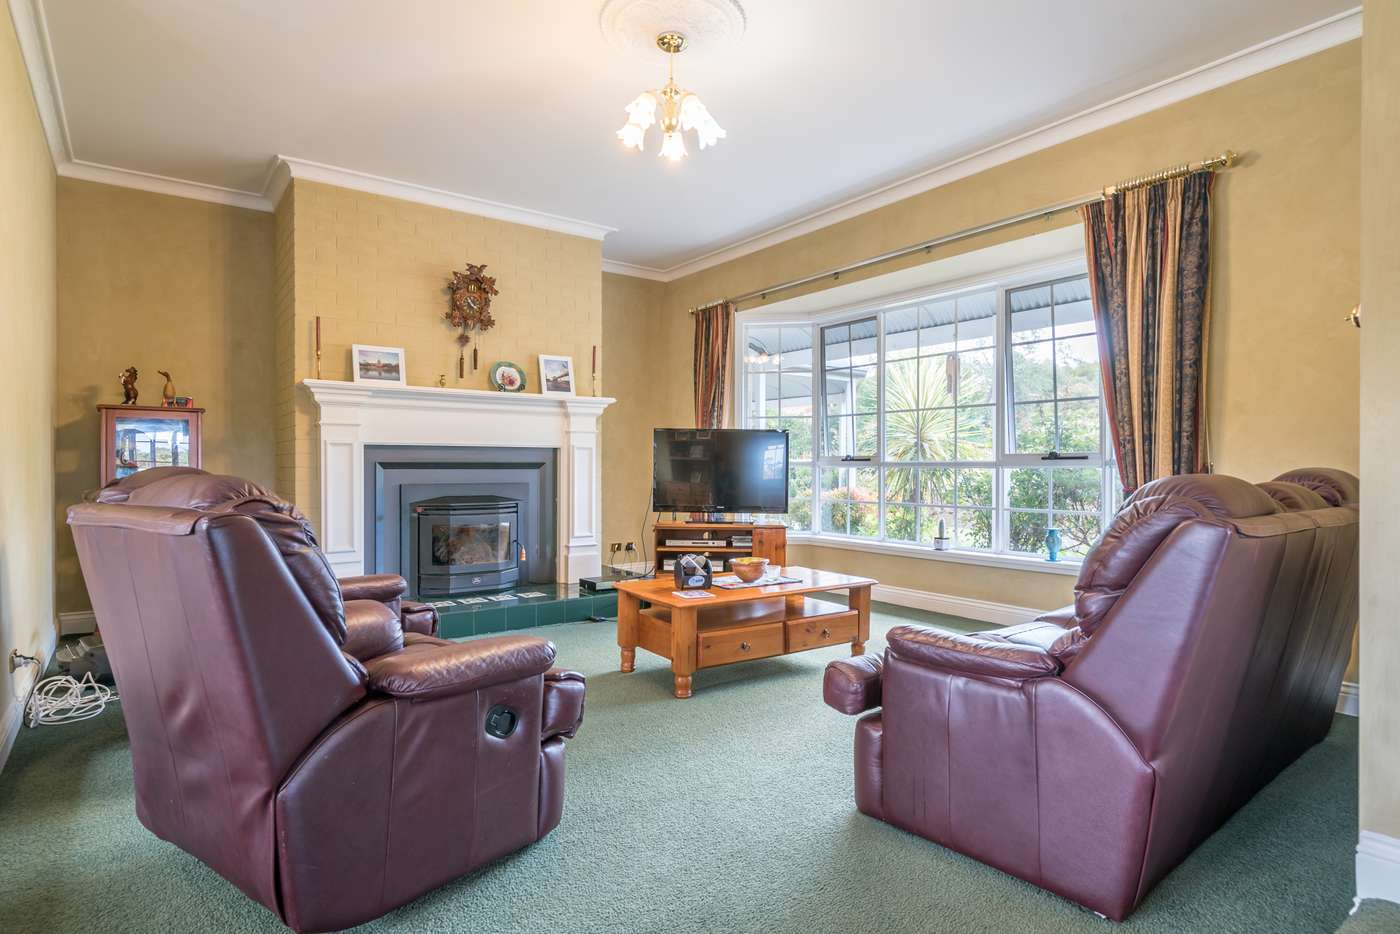 Sixth view of Homely house listing, 17 Panorama Road, Blackstone Heights TAS 7250